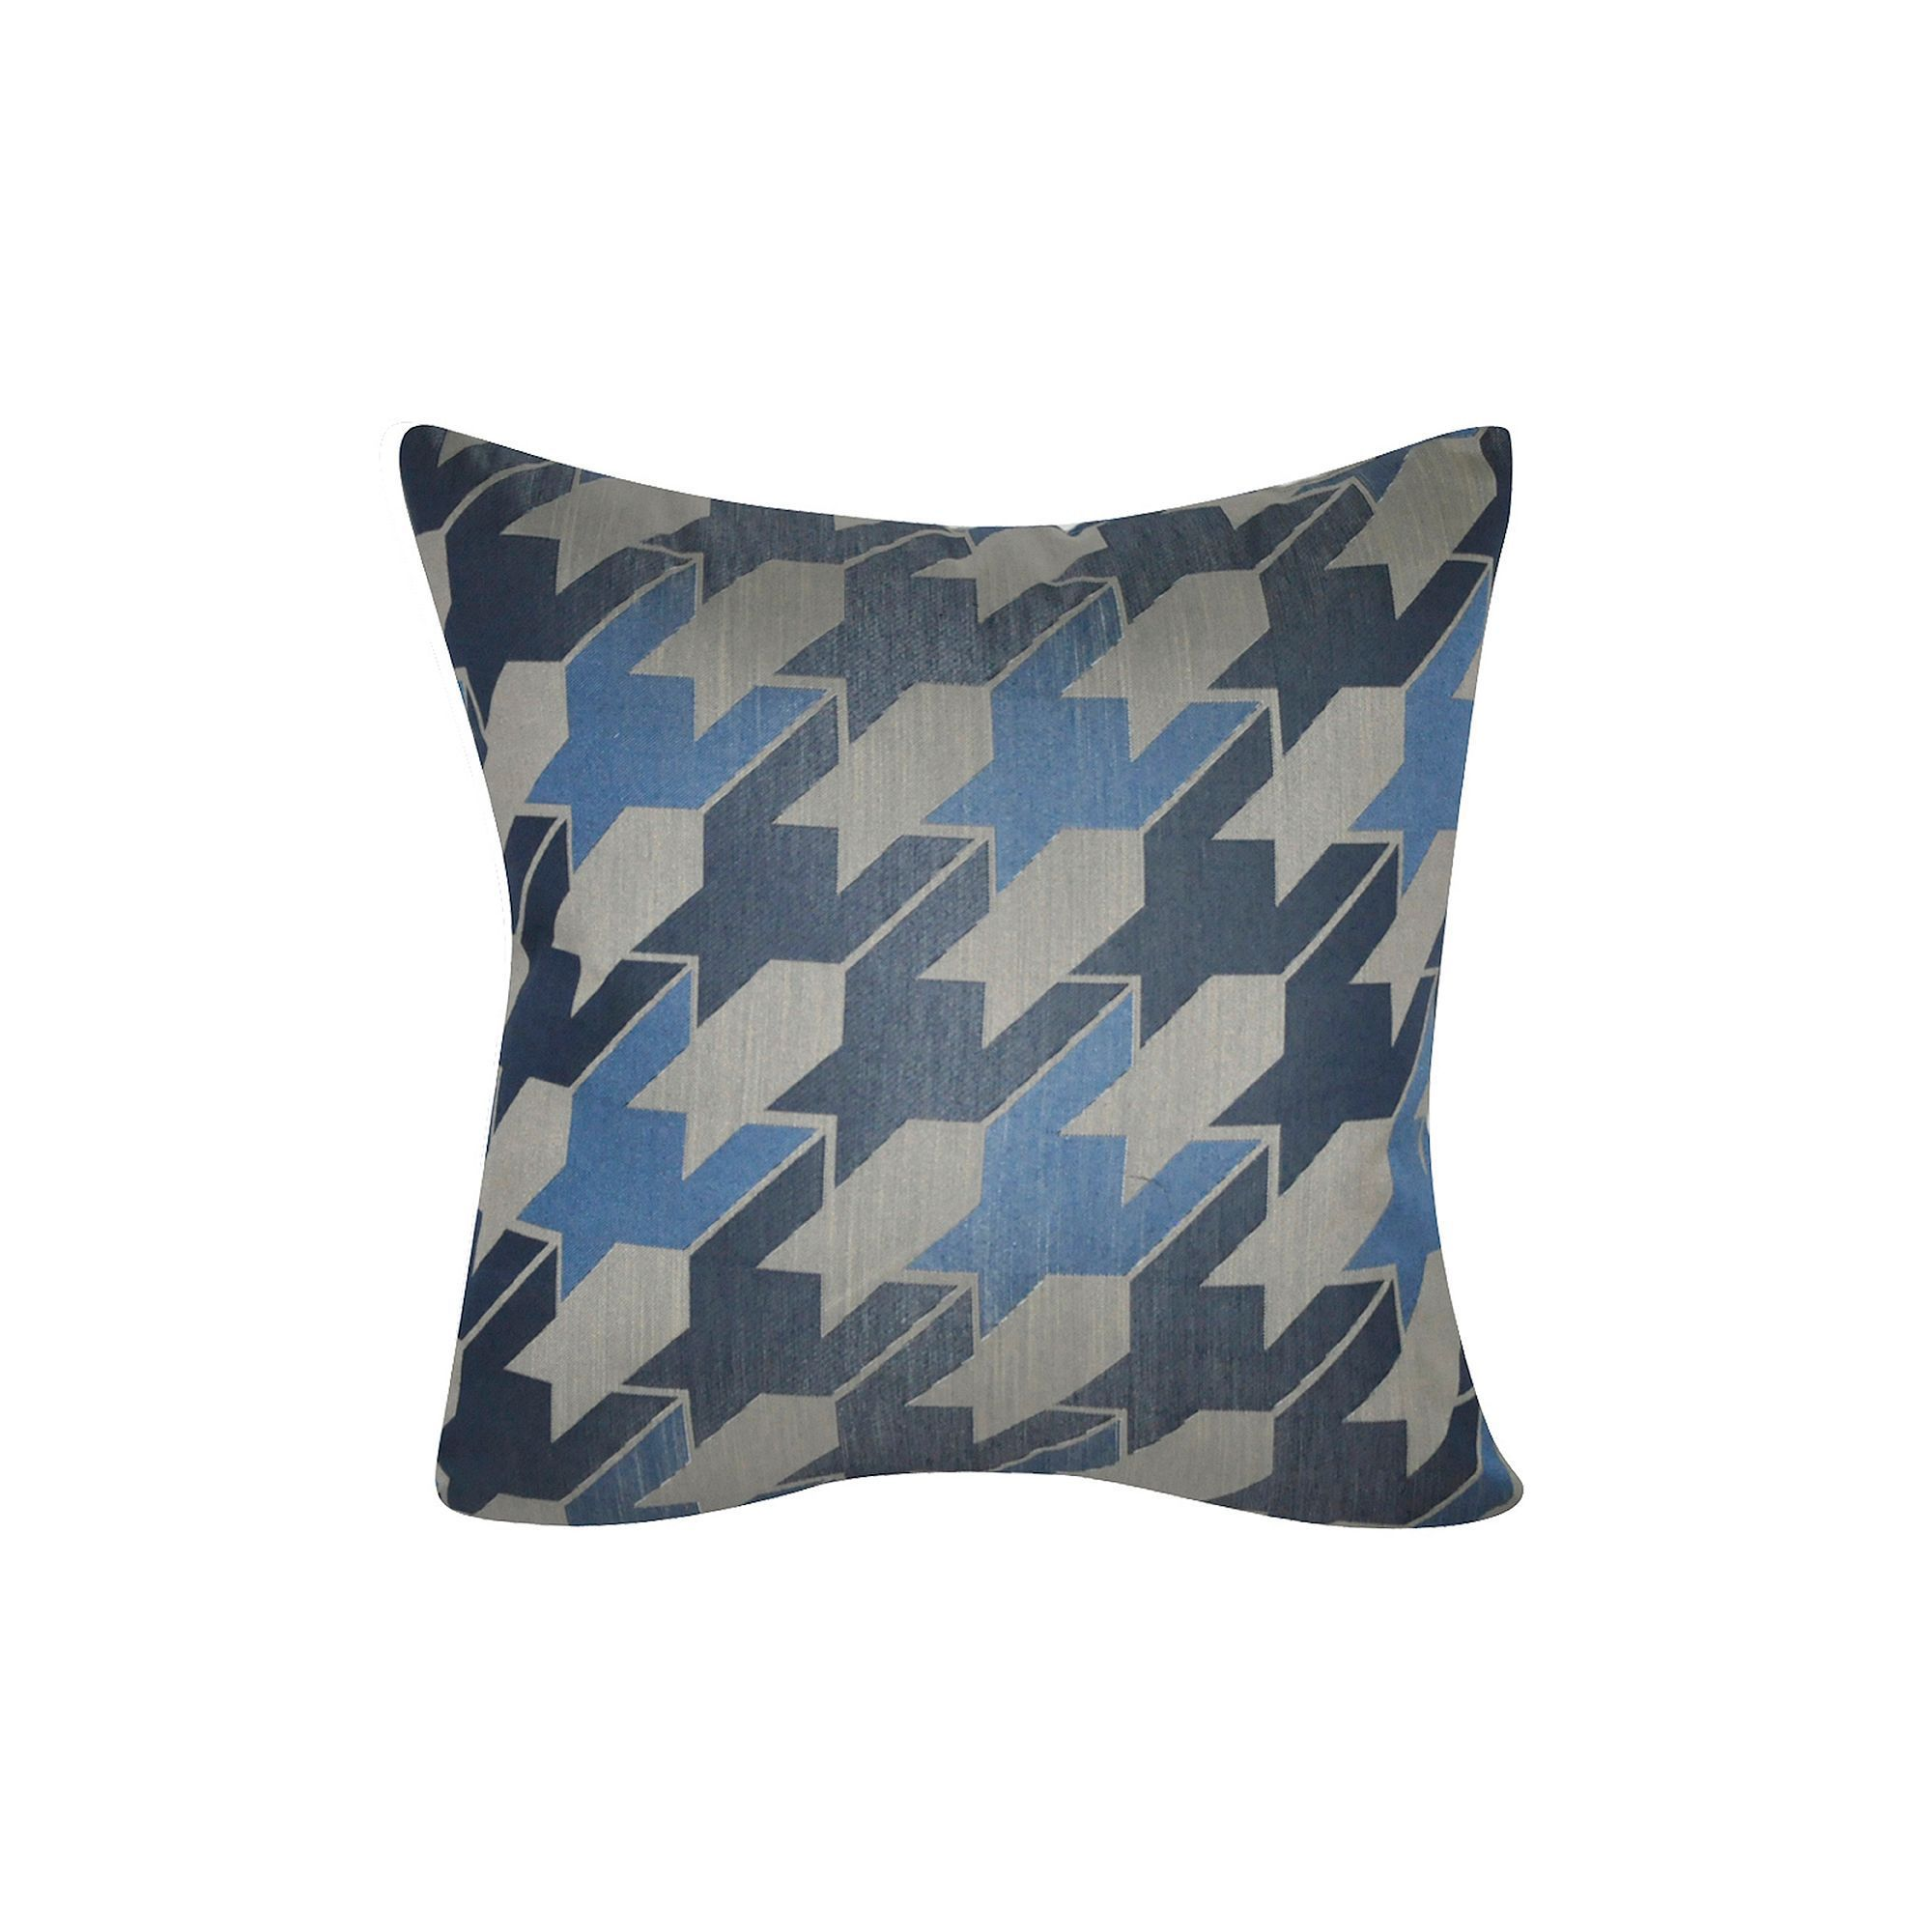 abstract modern cover sofa accent cushions kashmir couch contemporary pillows midnight product decorative geometric wool purple handmade pillow cushion waves throw blue